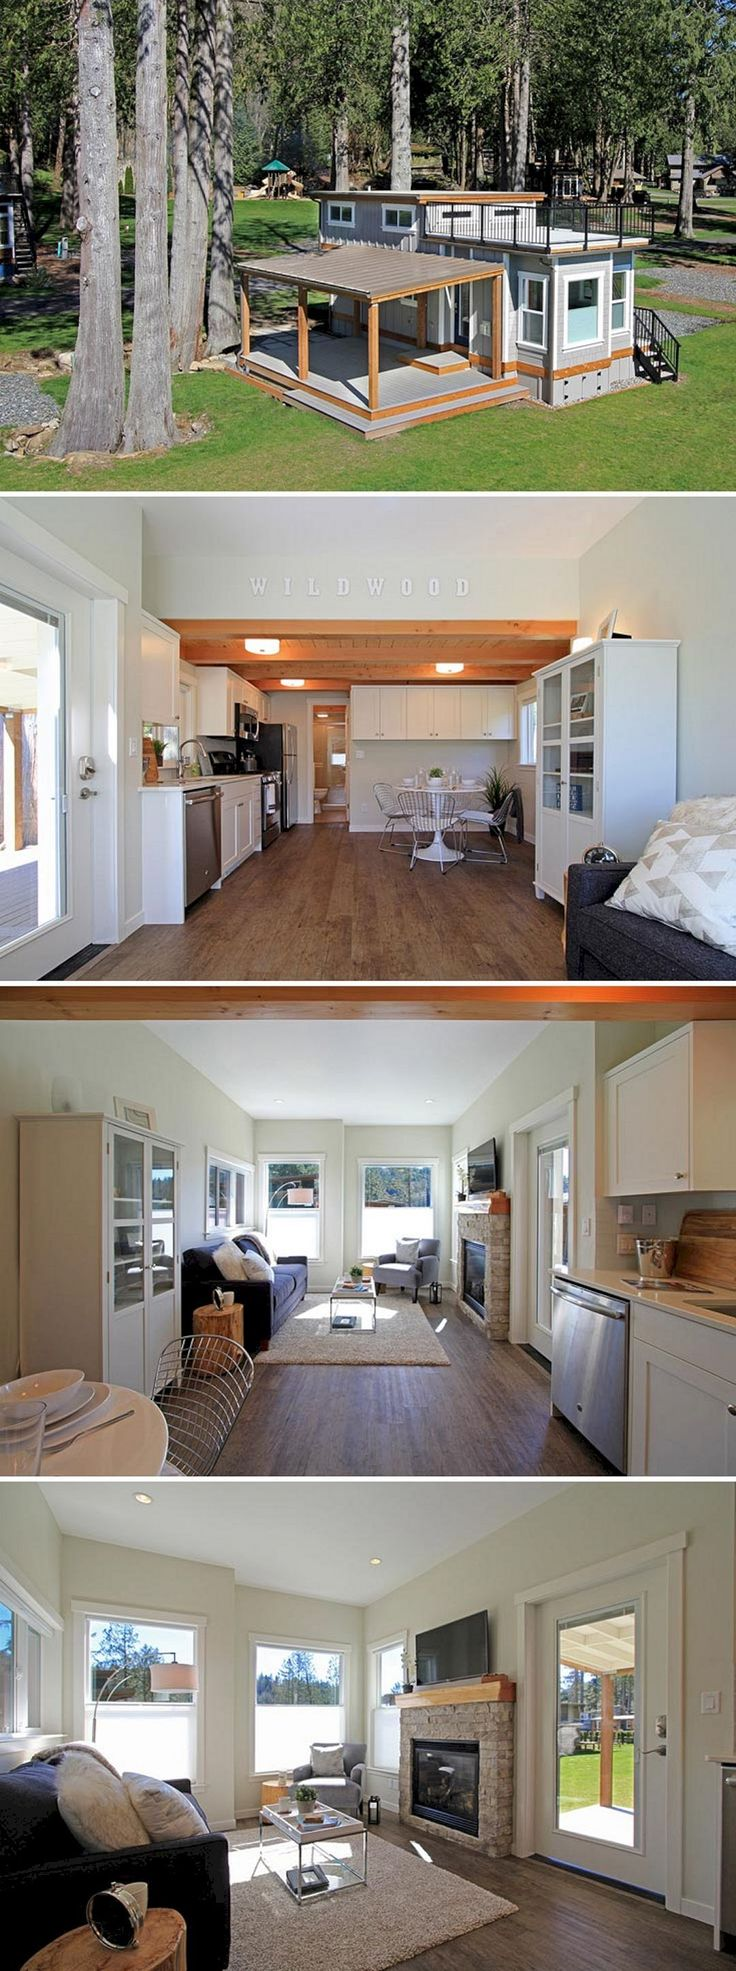 House design nice - Best 25 Tiny House Design Ideas On Pinterest Tiny Houses Tiny Living And Small House Interiors